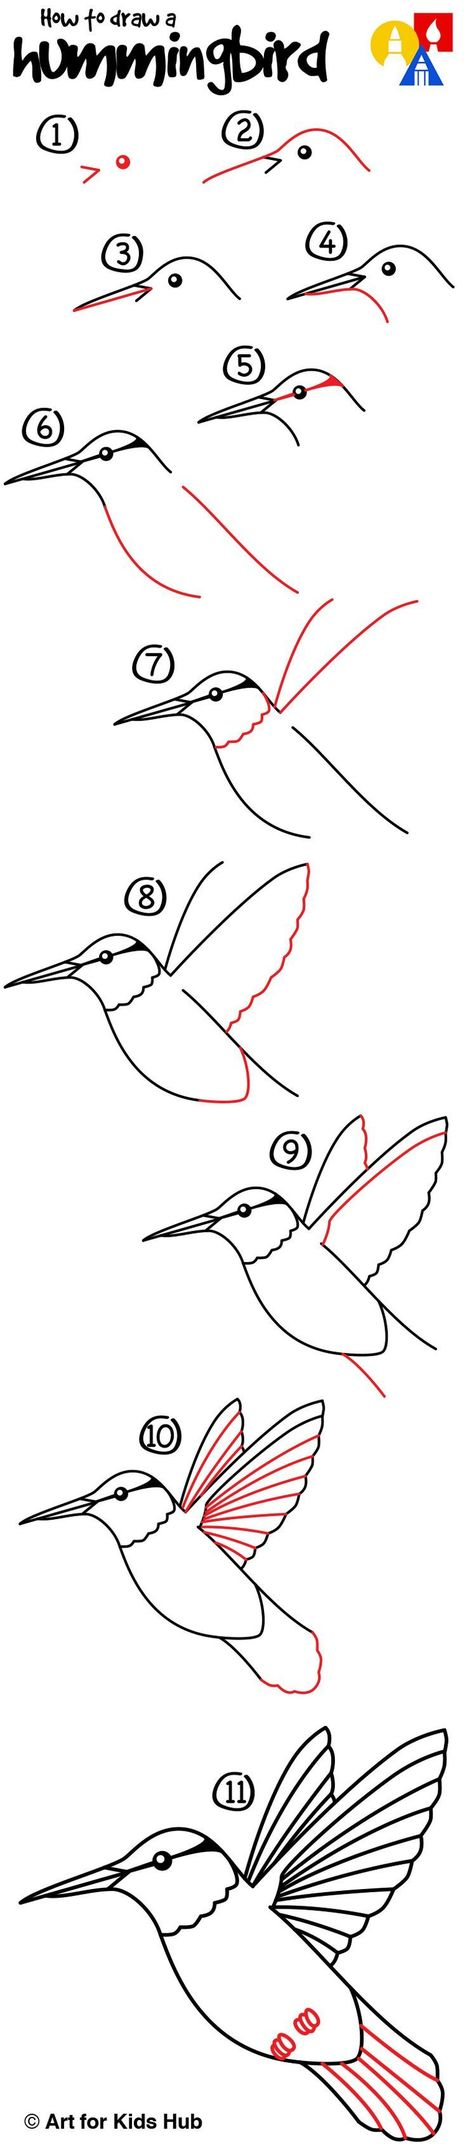 How To Draw A Hummingbird | Drawing and Painting Tutorials | Scoop.it